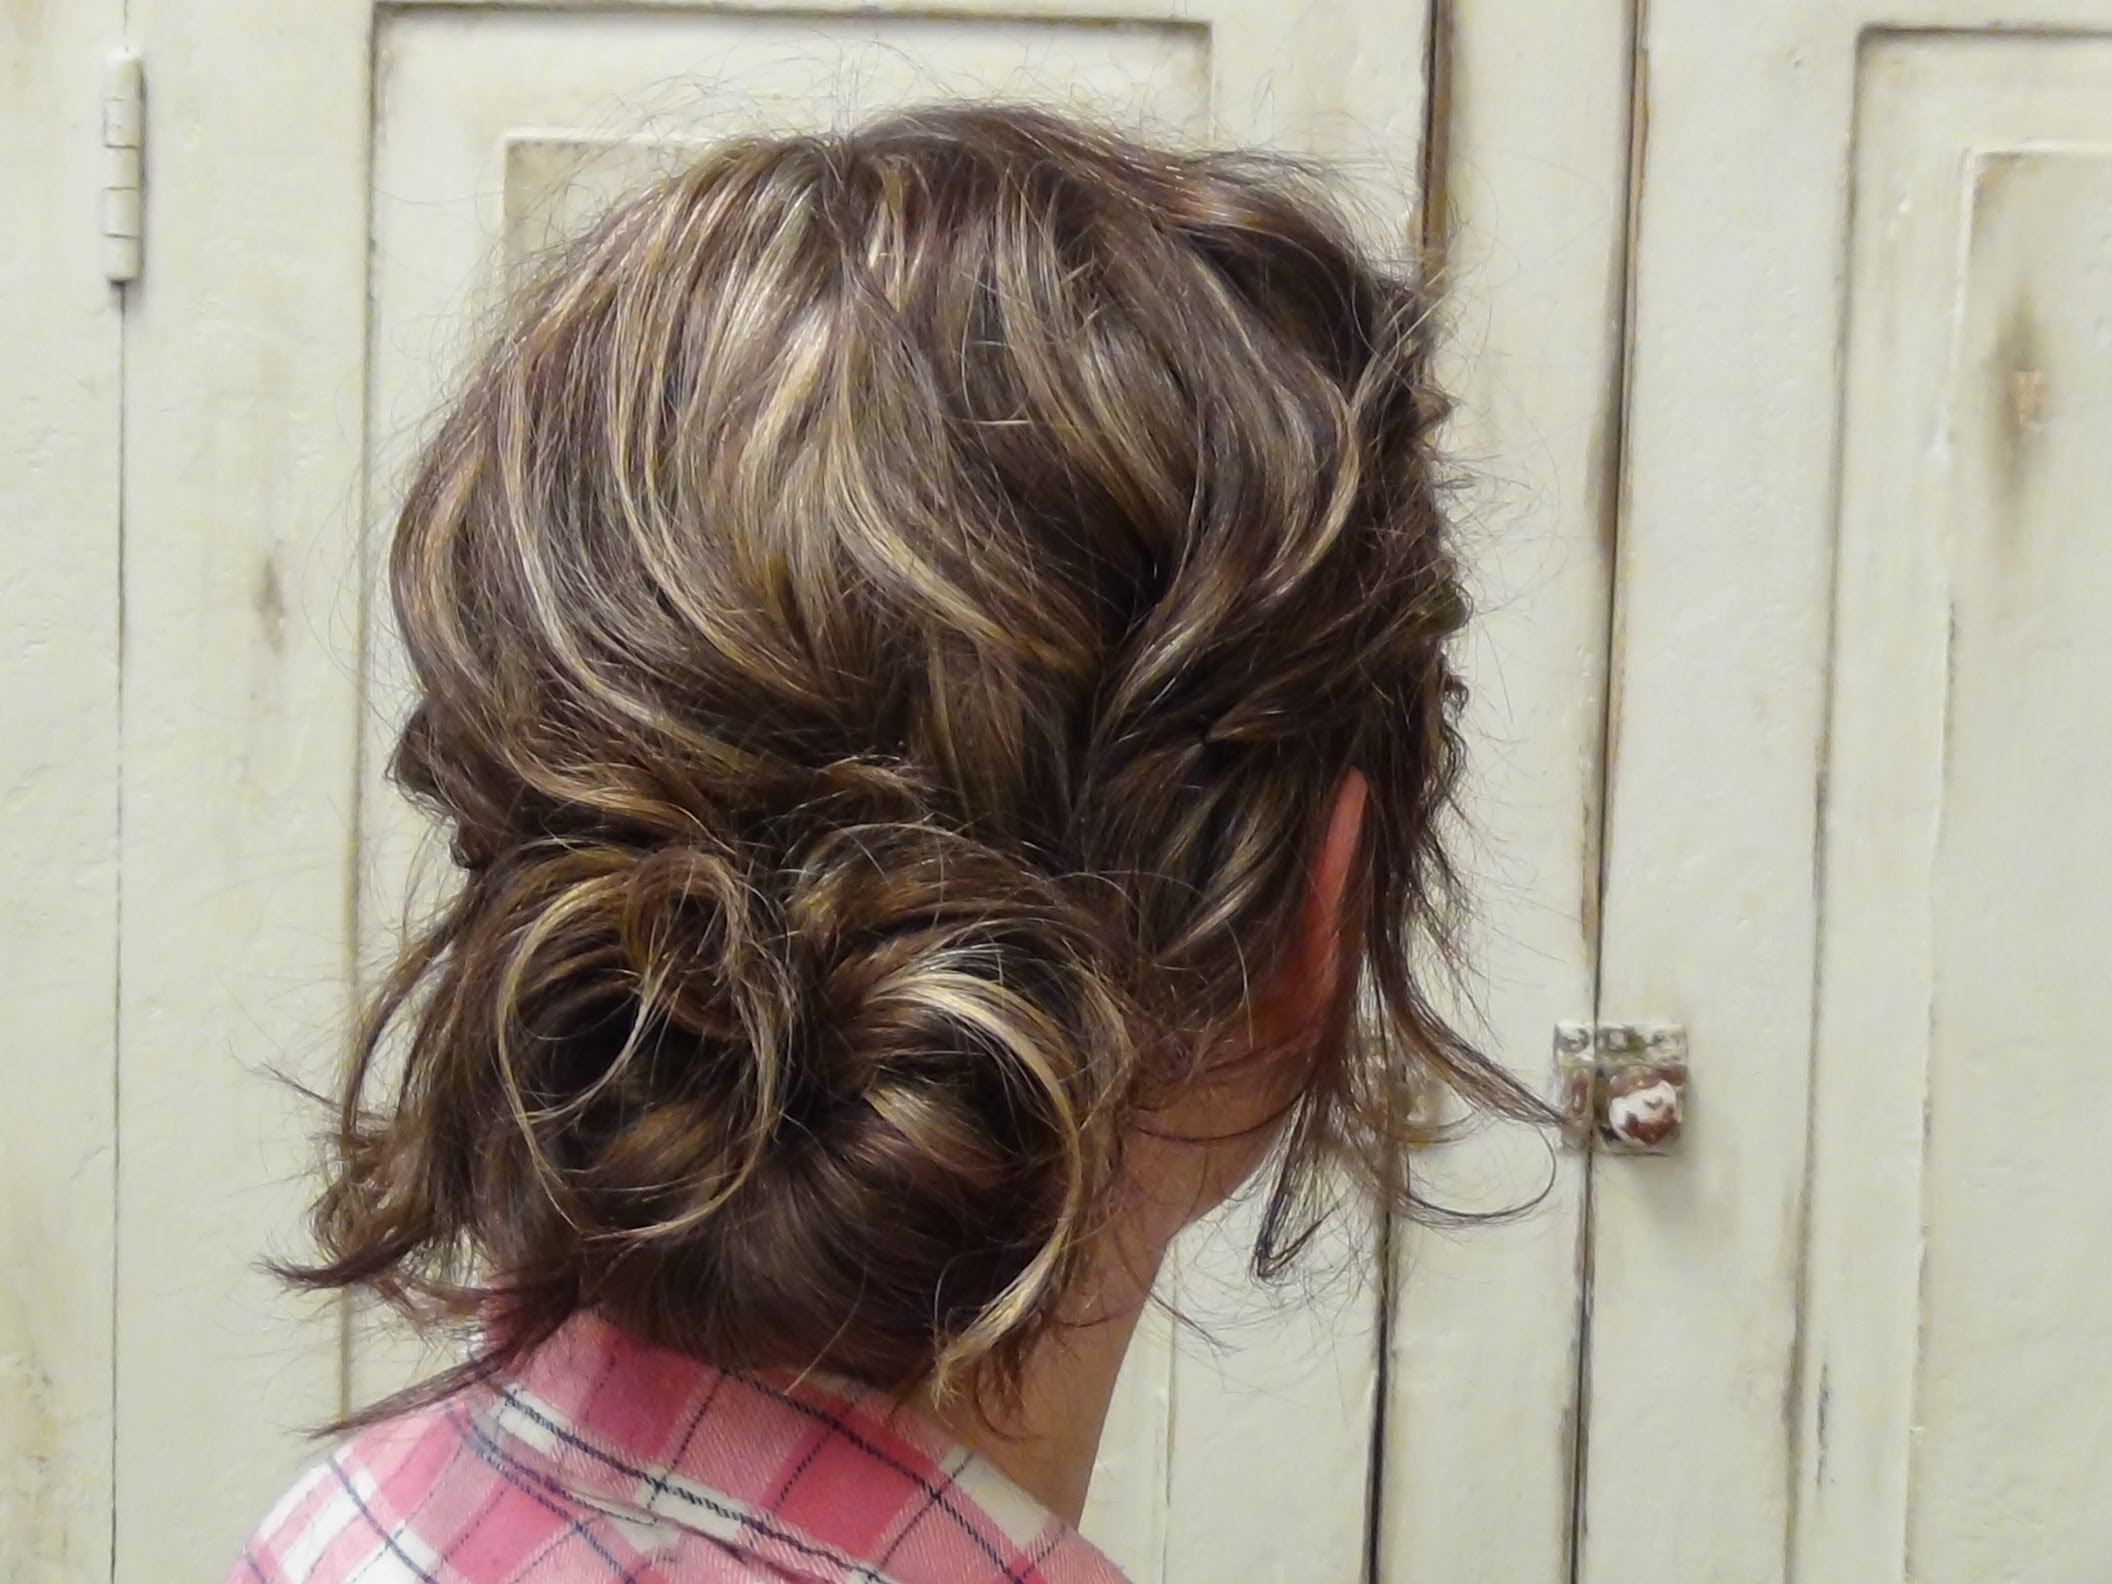 Low base bun